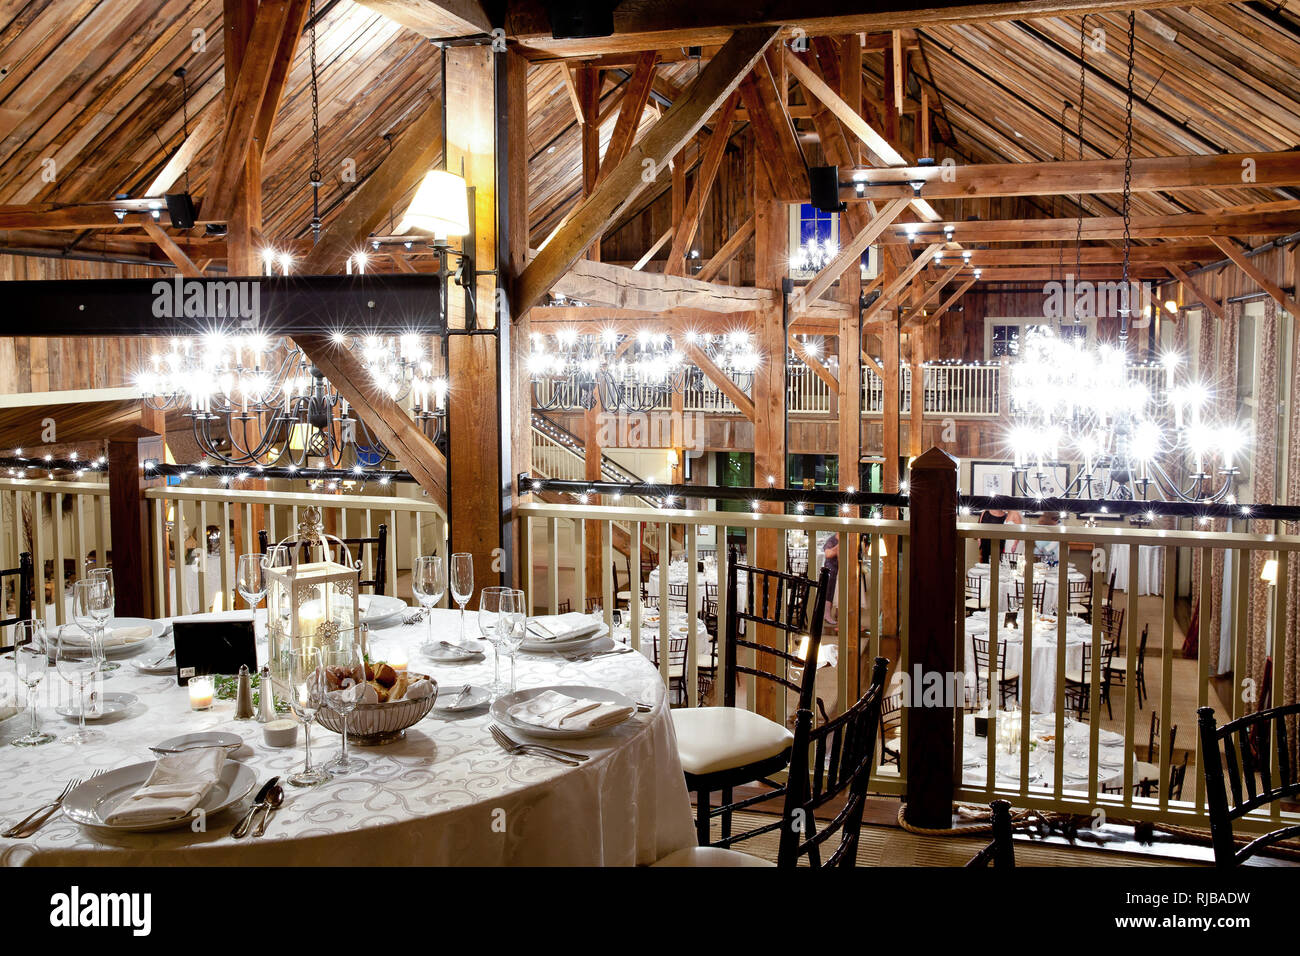 Wedding Tables Set For Fine Dining During A Wedding Reception In A Rustic Old Barn Part Of A Series Of Wedding Photos That Feature Table Settings Stock Photo Alamy